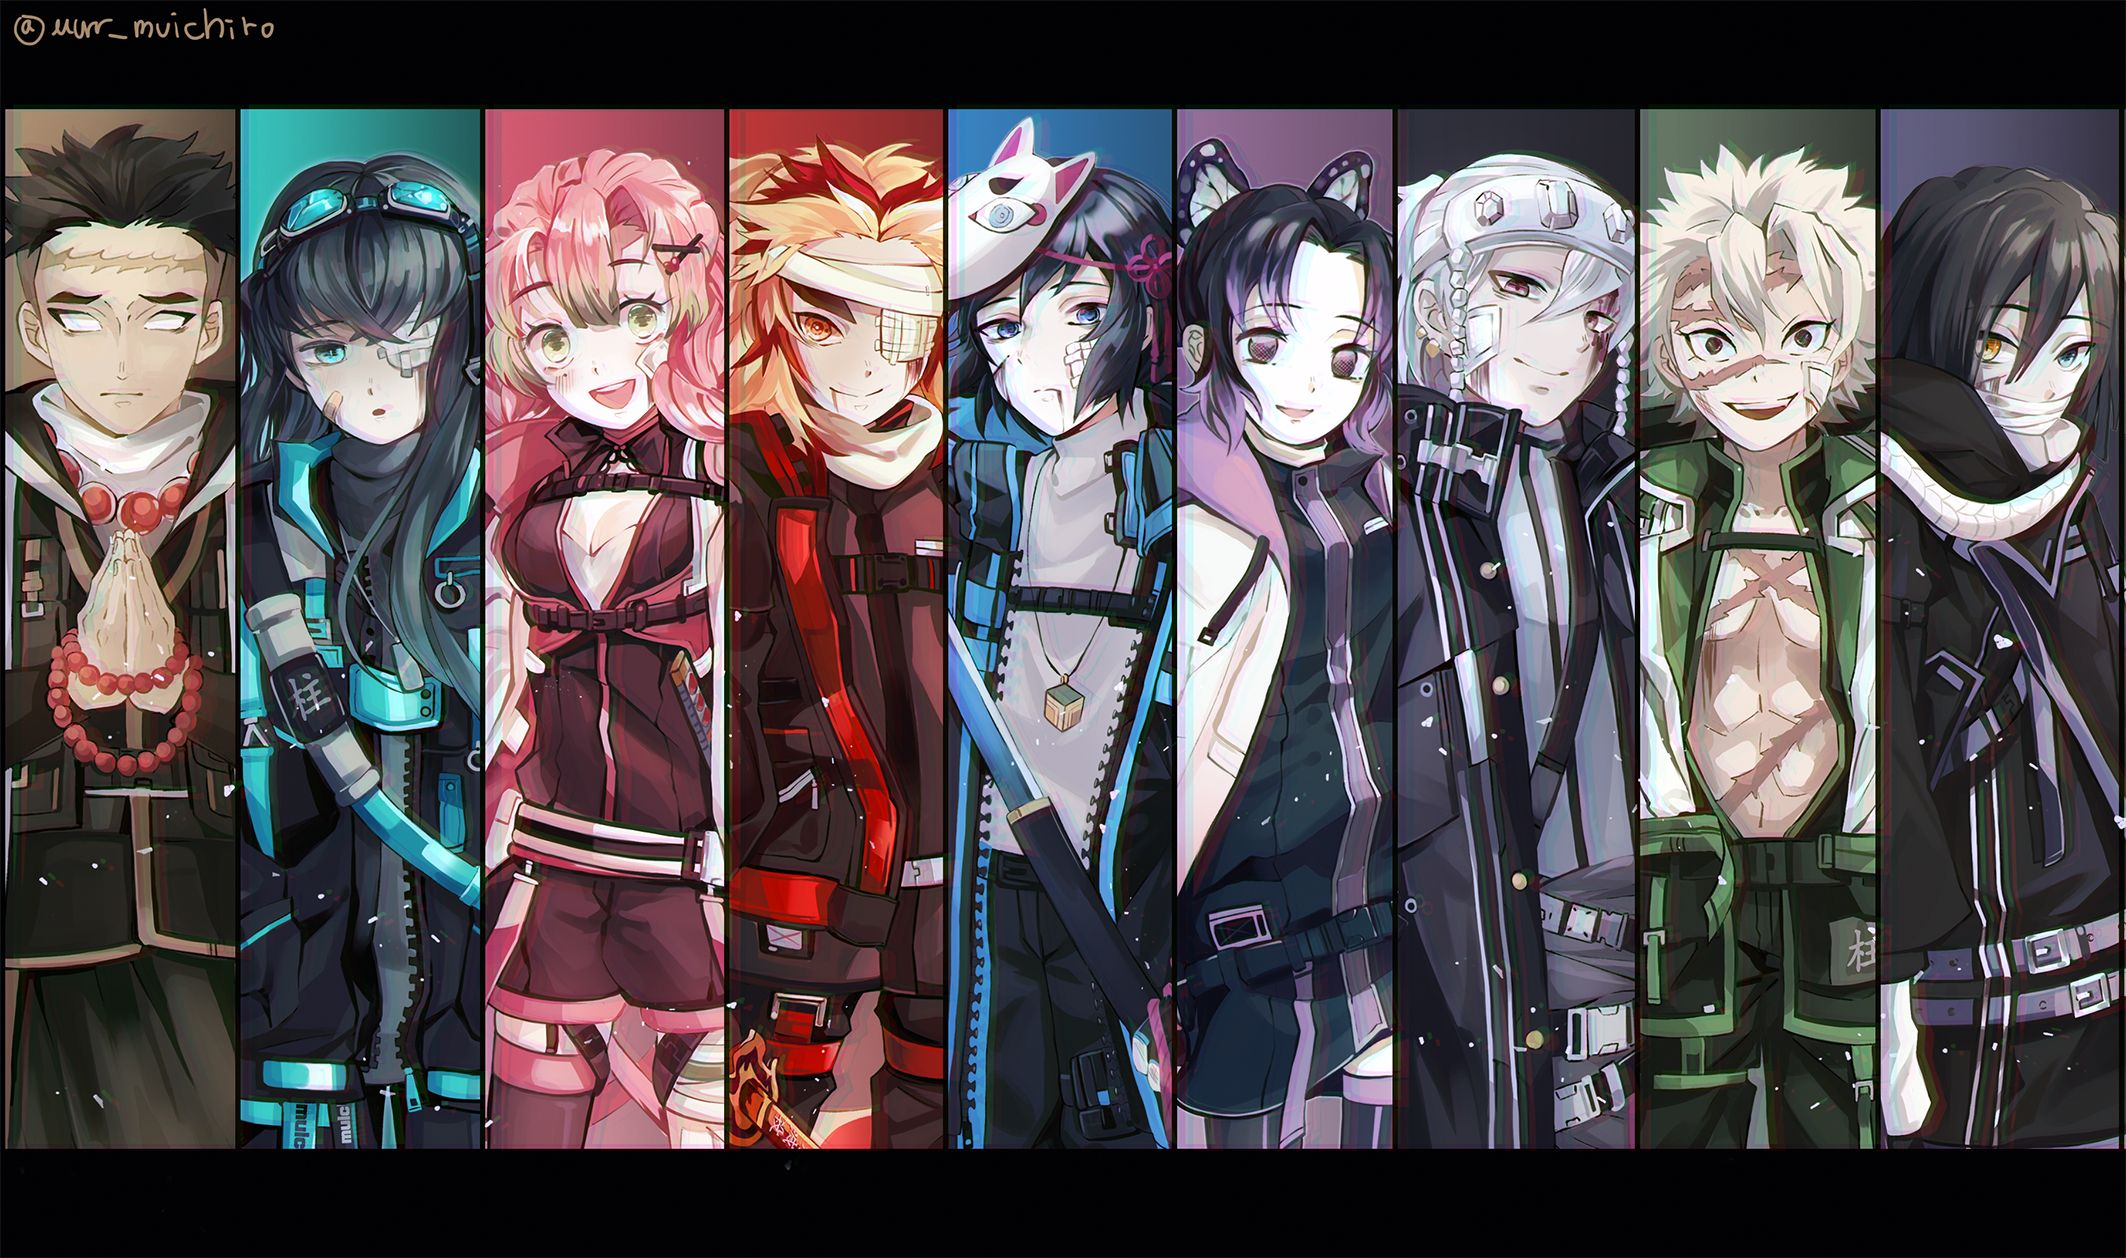 Kimetsu No Yaiba Hashira Wallpapers Top Free Kimetsu No Yaiba Hashira Backgrounds Wallpaperaccess Explore the 5 mobile wallpapers associated with the tag tengen uzui and download freely everything you like! kimetsu no yaiba hashira wallpapers